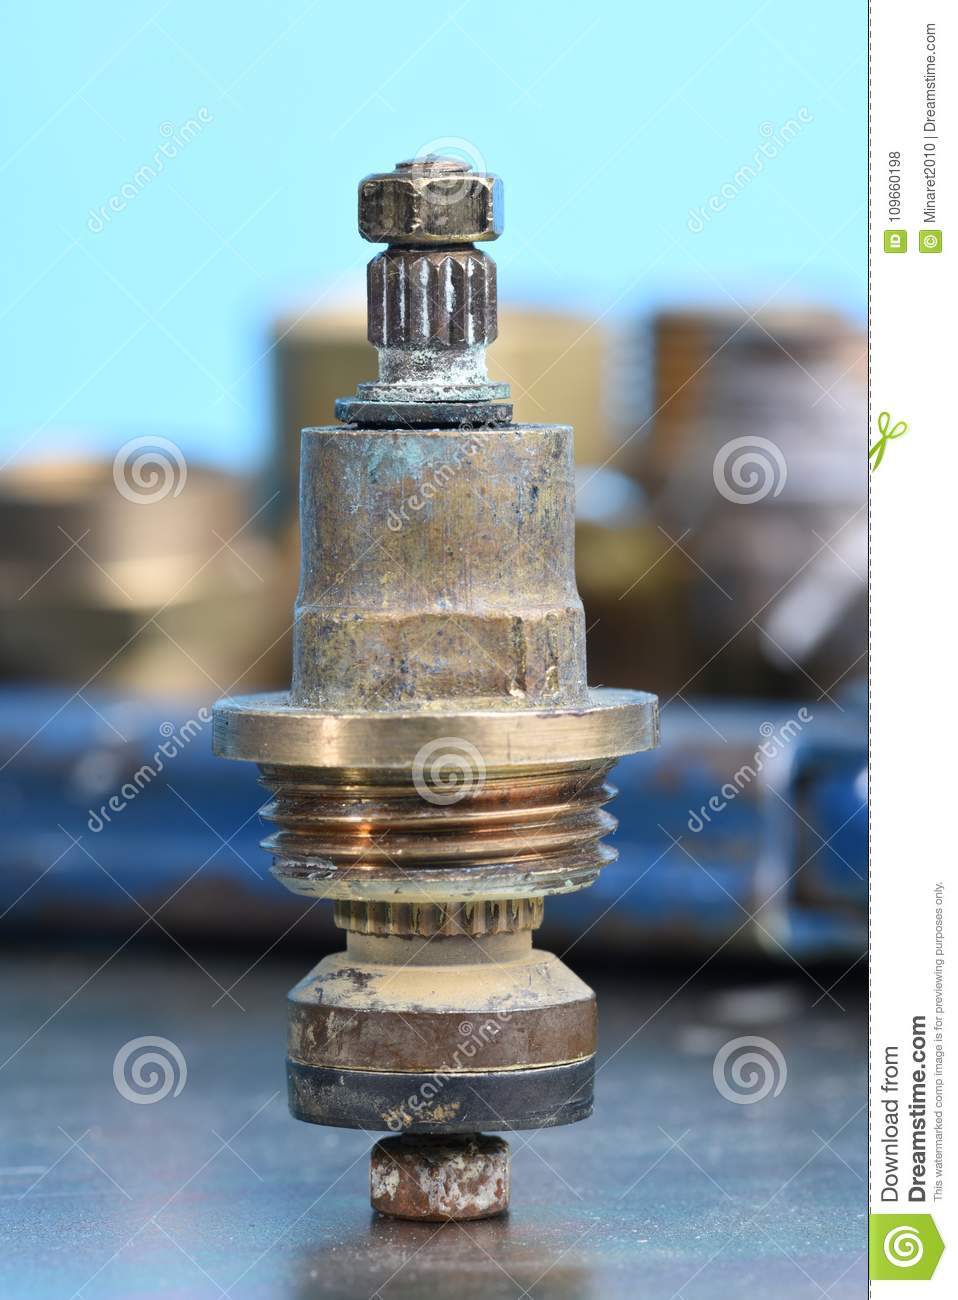 Plumbing Parts And Repair Old Brass Tap Valve And Tools Stock Photo ...